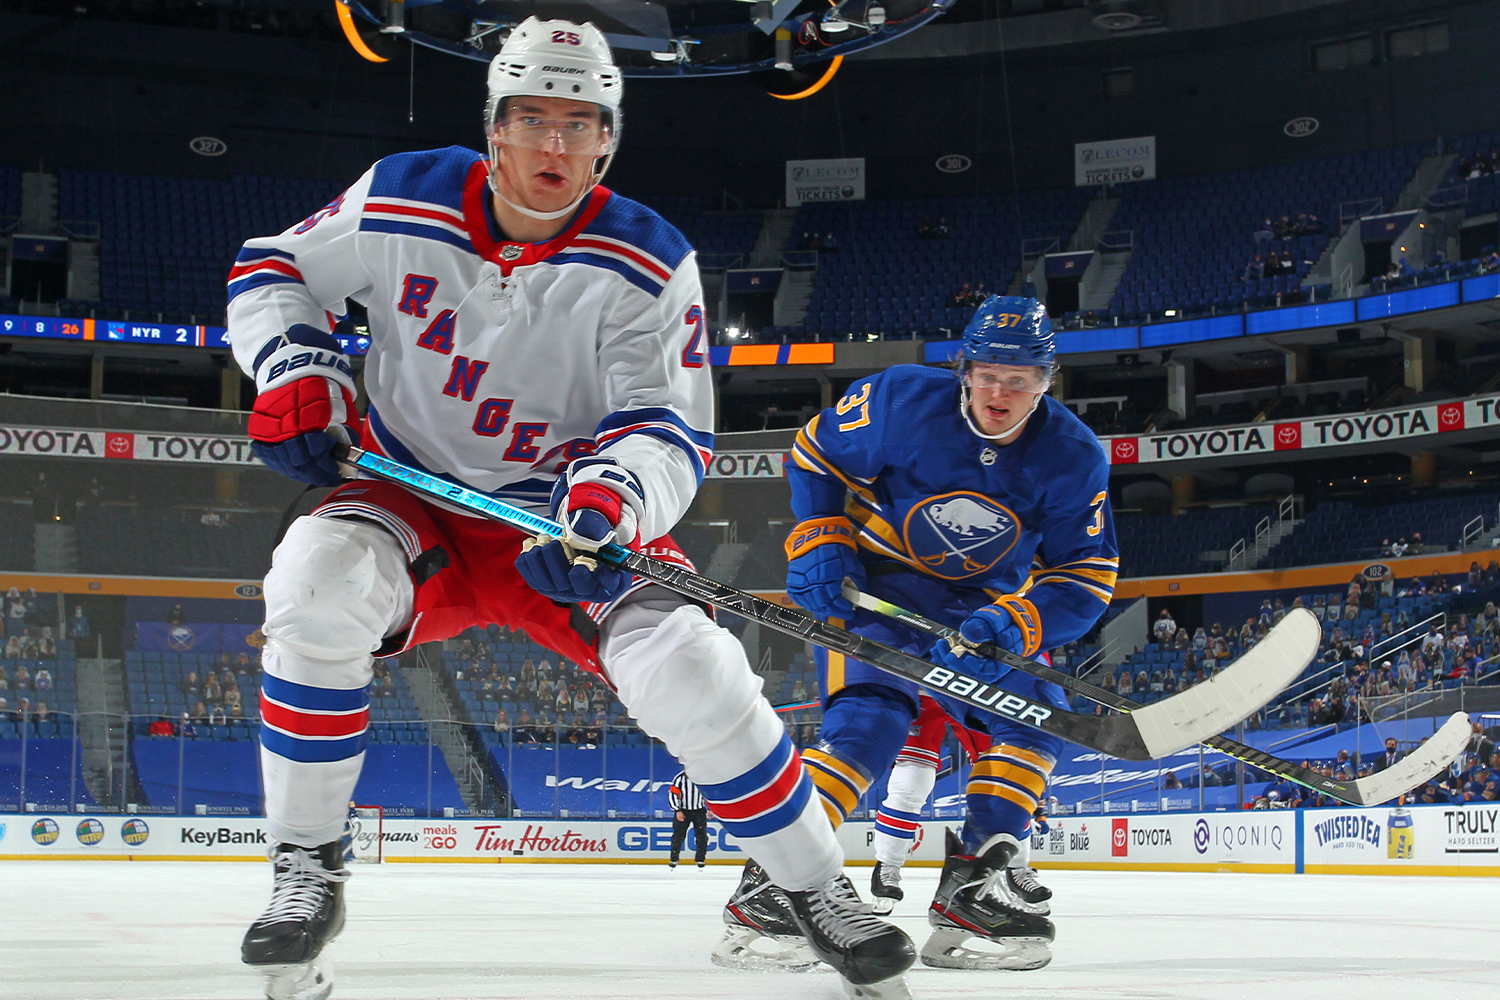 Libor Hajek #25 of the New York Rangers and Casey Mittelstadt #37 of the Buffalo Sabres follow the puck during an NHL game on April 3, 2021